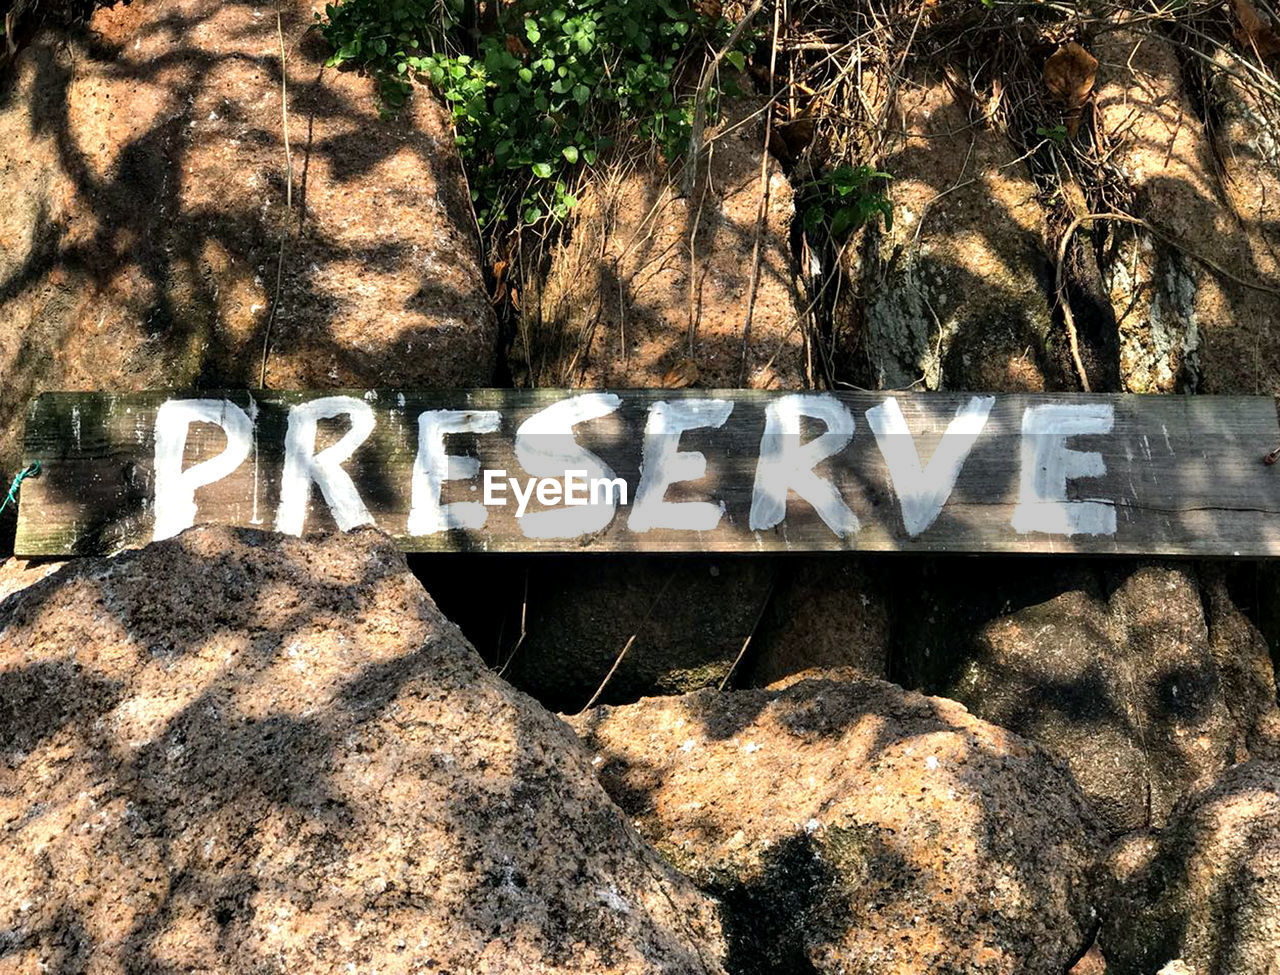 text, communication, western script, day, sunlight, capital letter, no people, sign, nature, shadow, plant, tree, single word, outdoors, graffiti, writing, information, solid, rock, wall, message